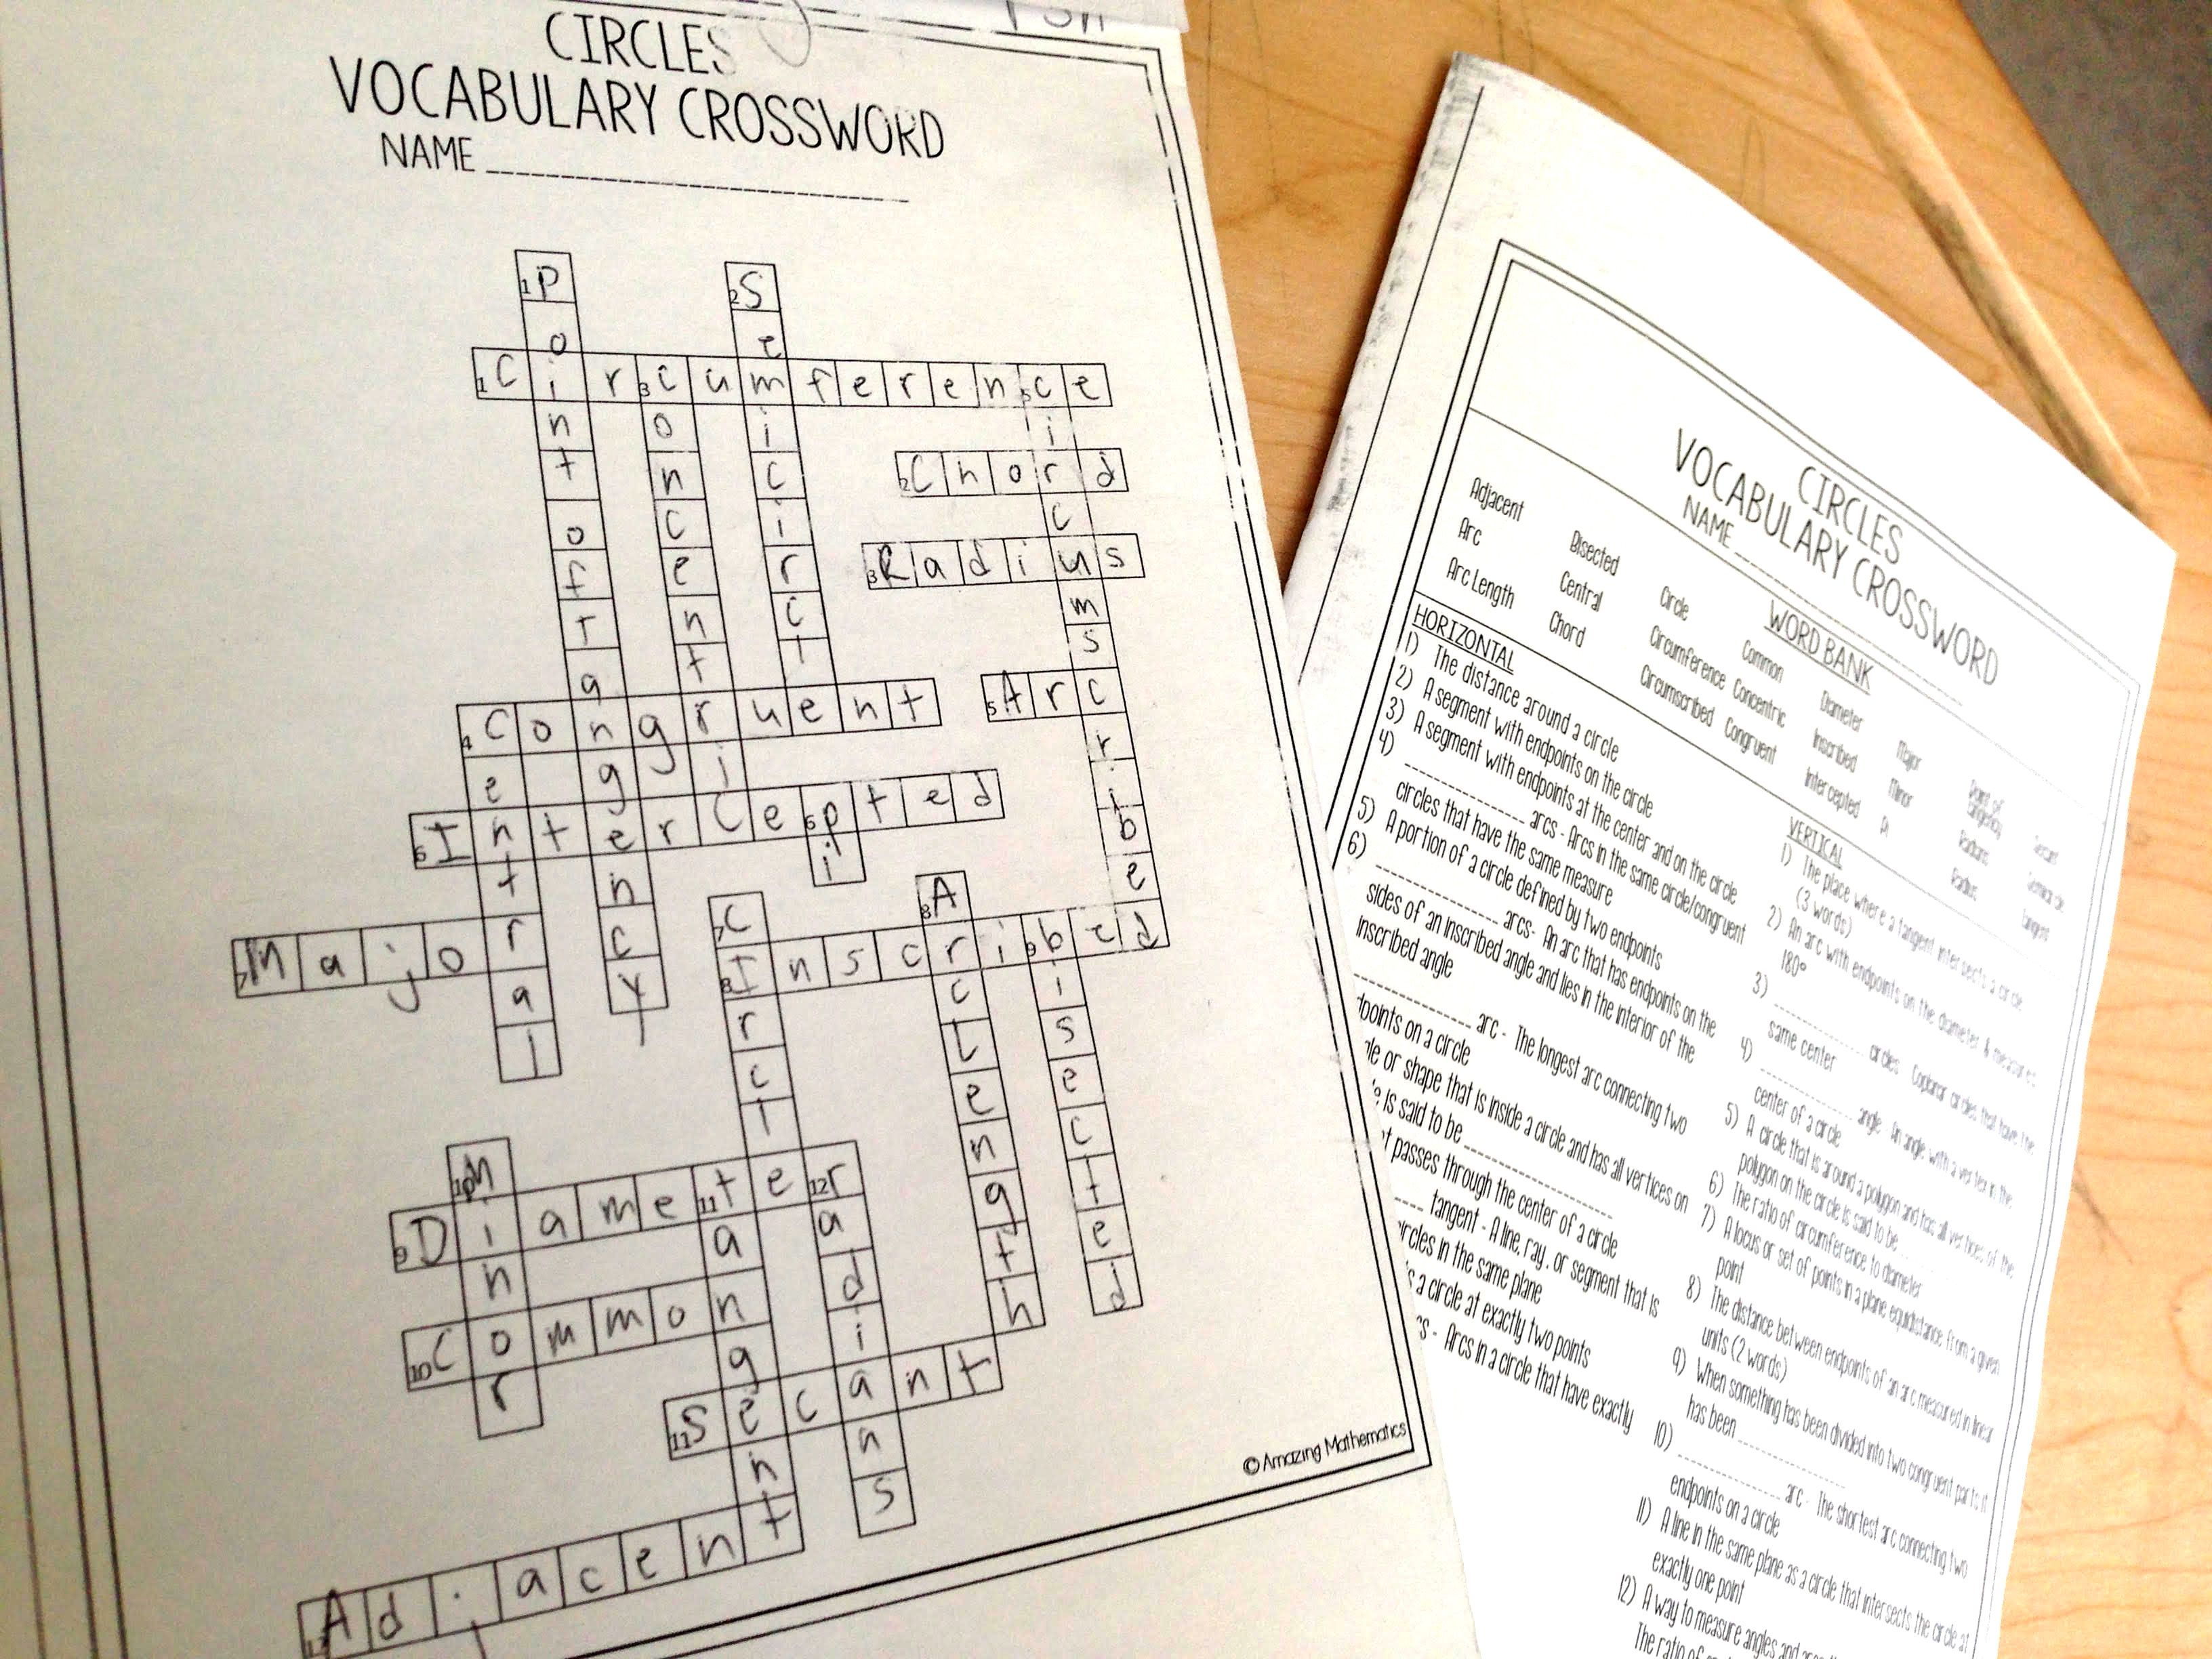 Circles Vocabulary Crossword